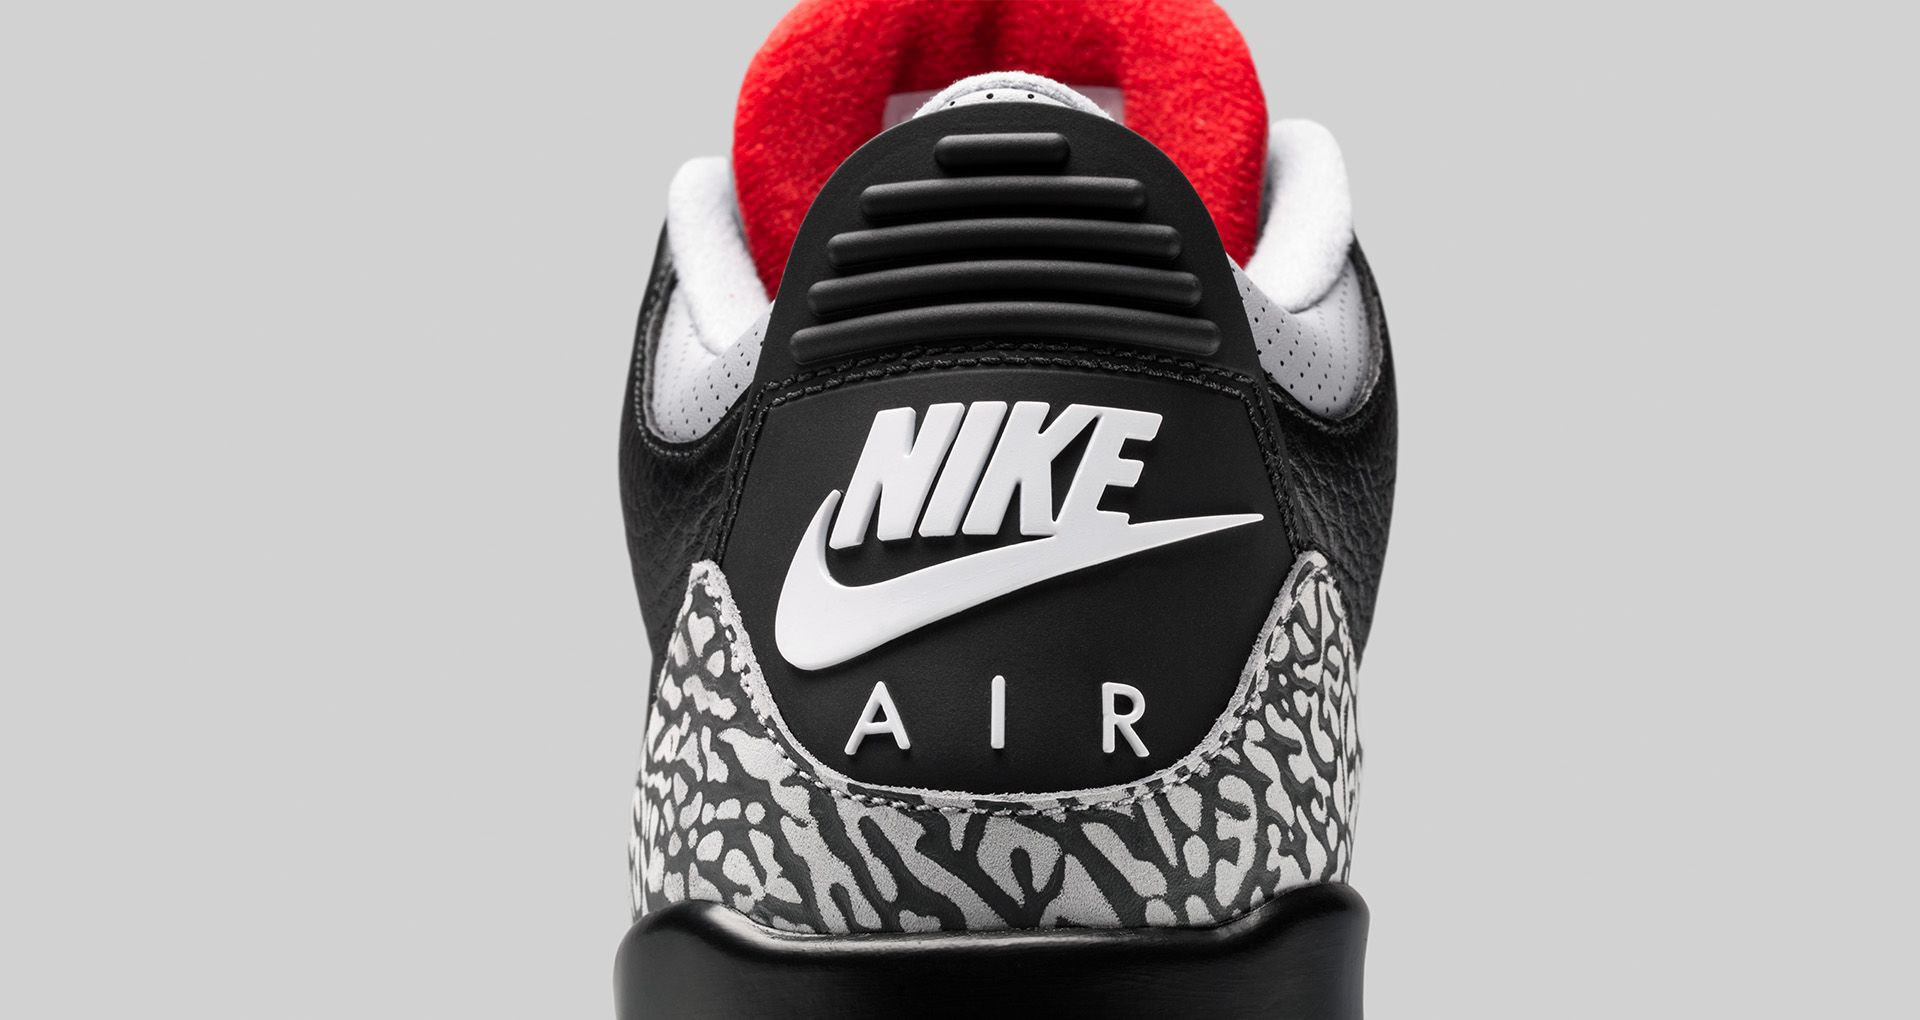 separation shoes ce42e 36264 Air Jordan 3 Retro OG 'Black Cement' 2018 Release Date ...